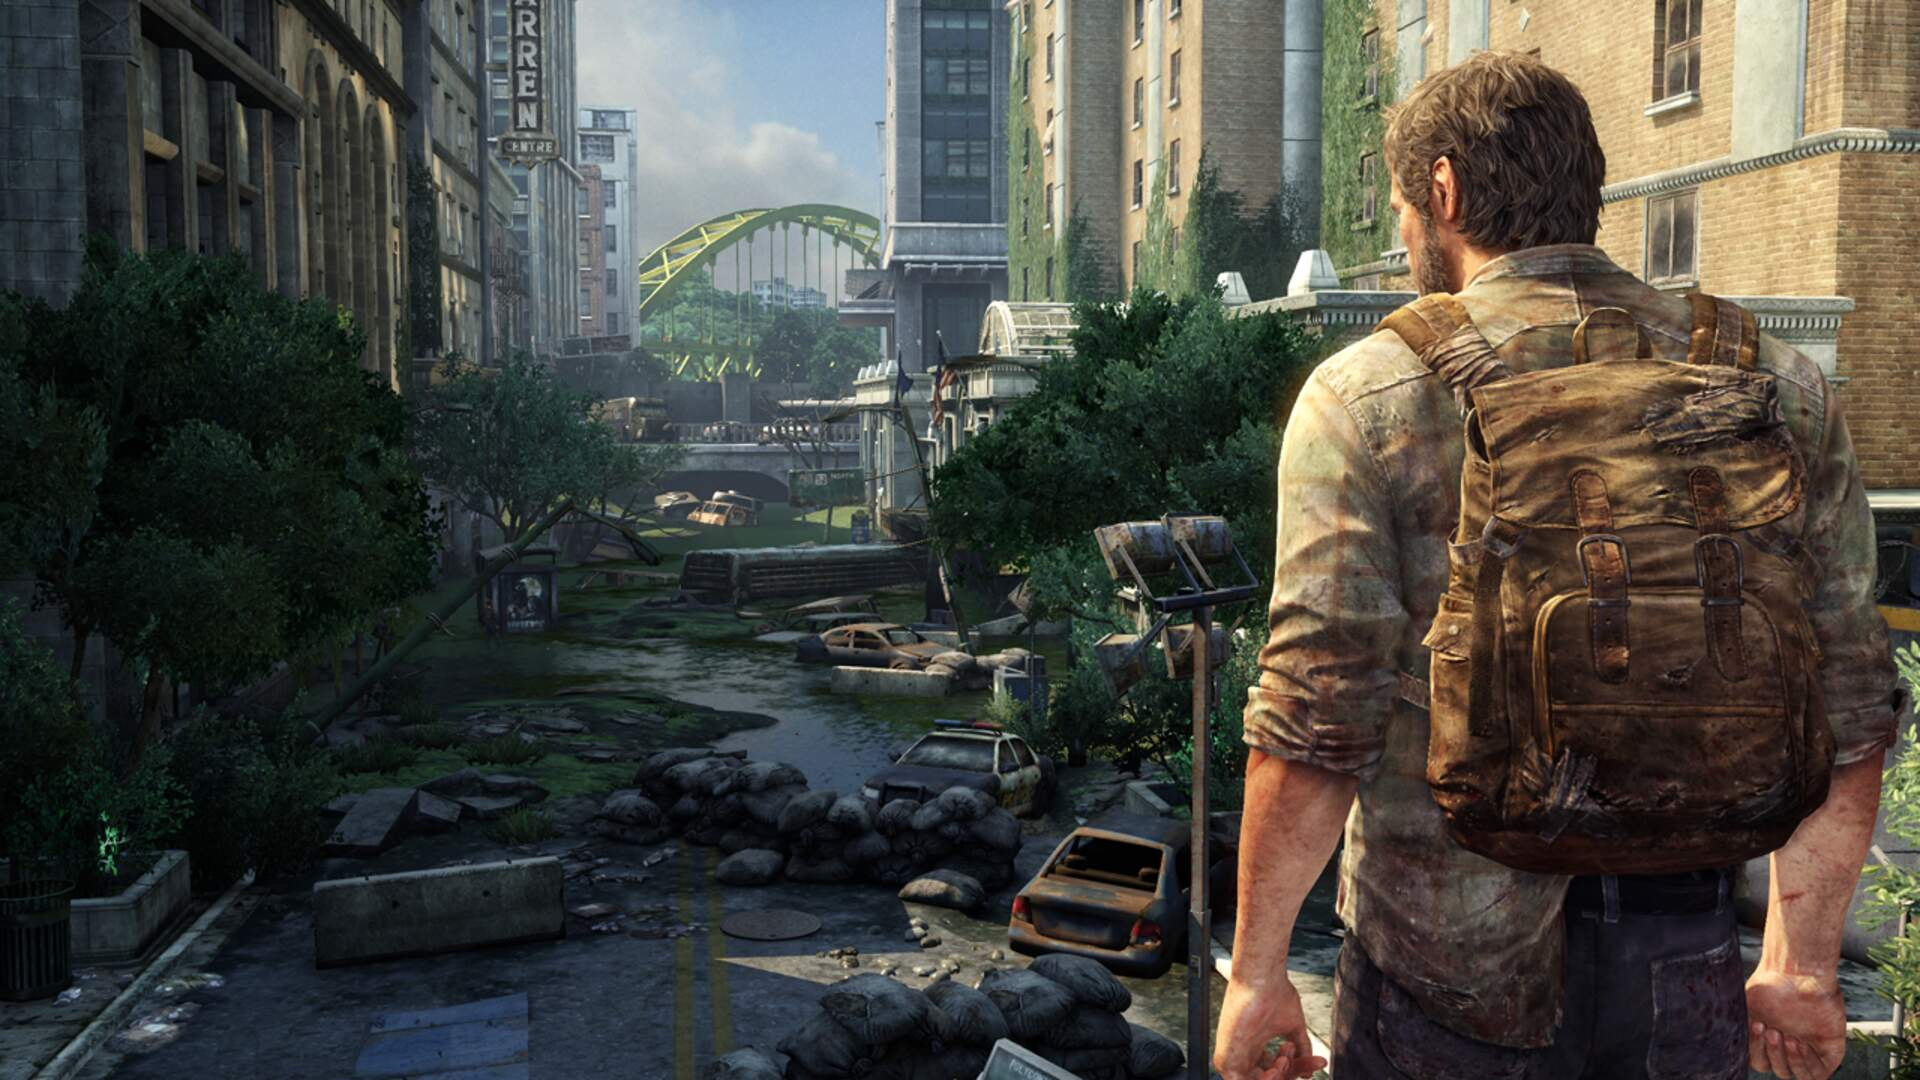 The Last of Us TV Series Is Now Officially Greenlit and Moving Ahead at HBO